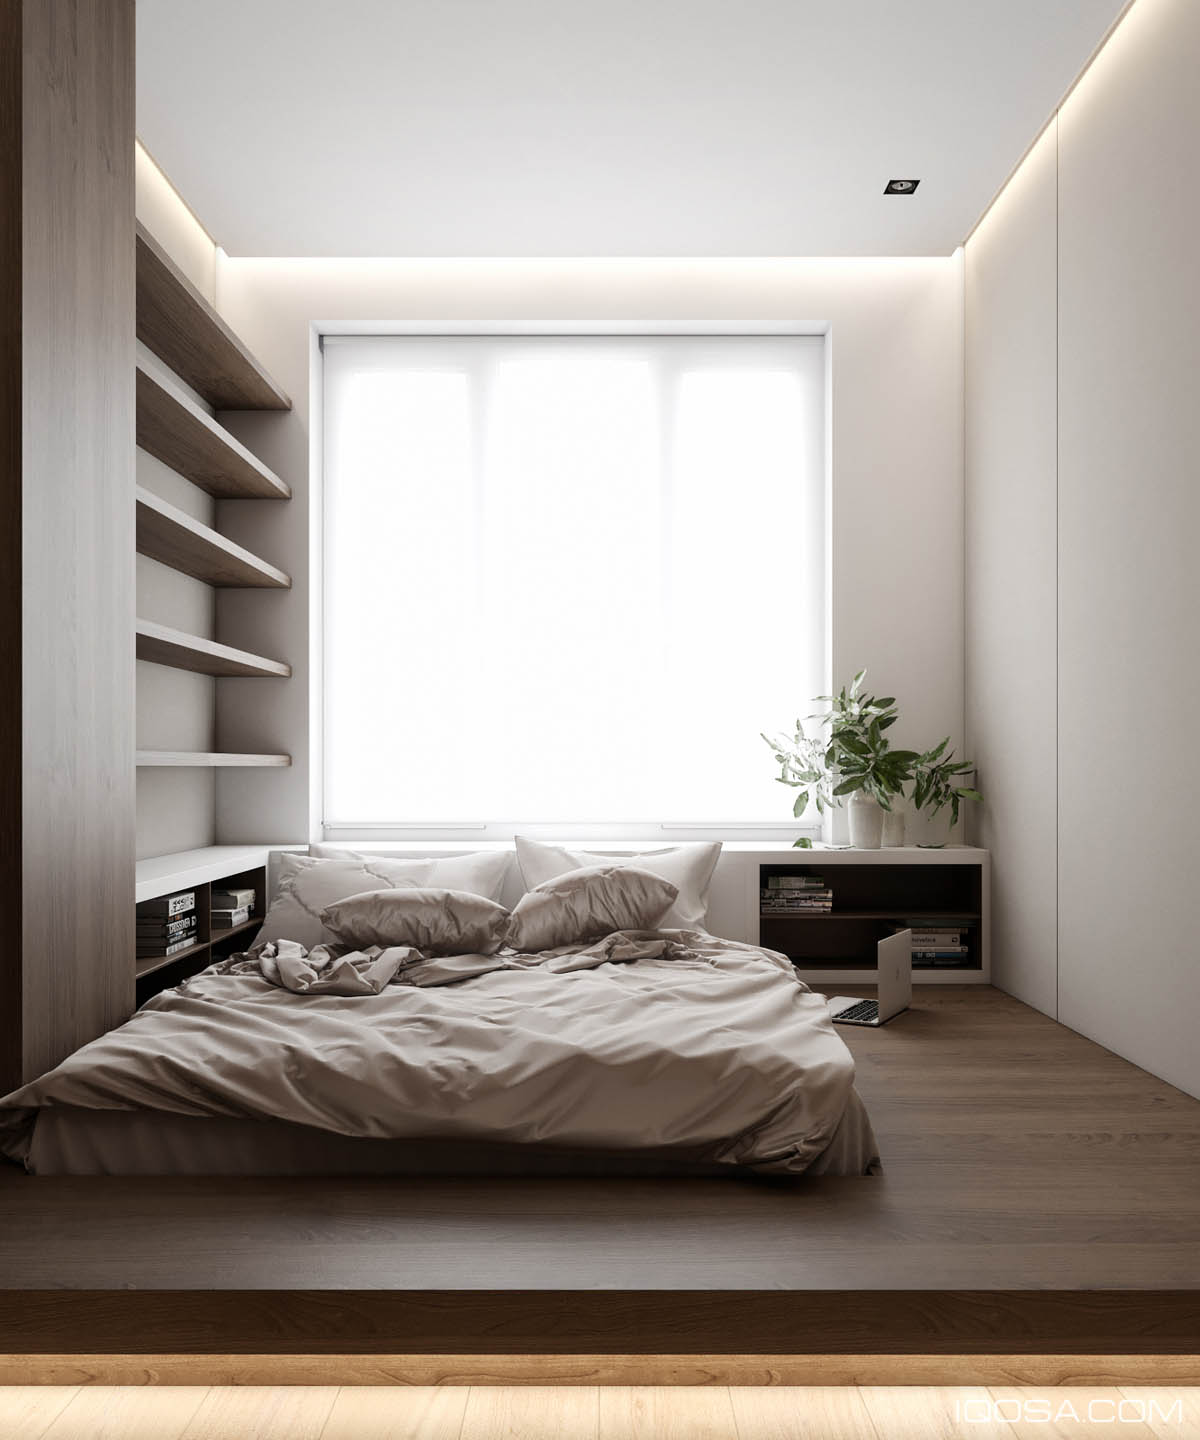 Home design under 60 square meters 3 examples that incorporate luxury in small spaces - Bedroom furniture small spaces minimalist ...